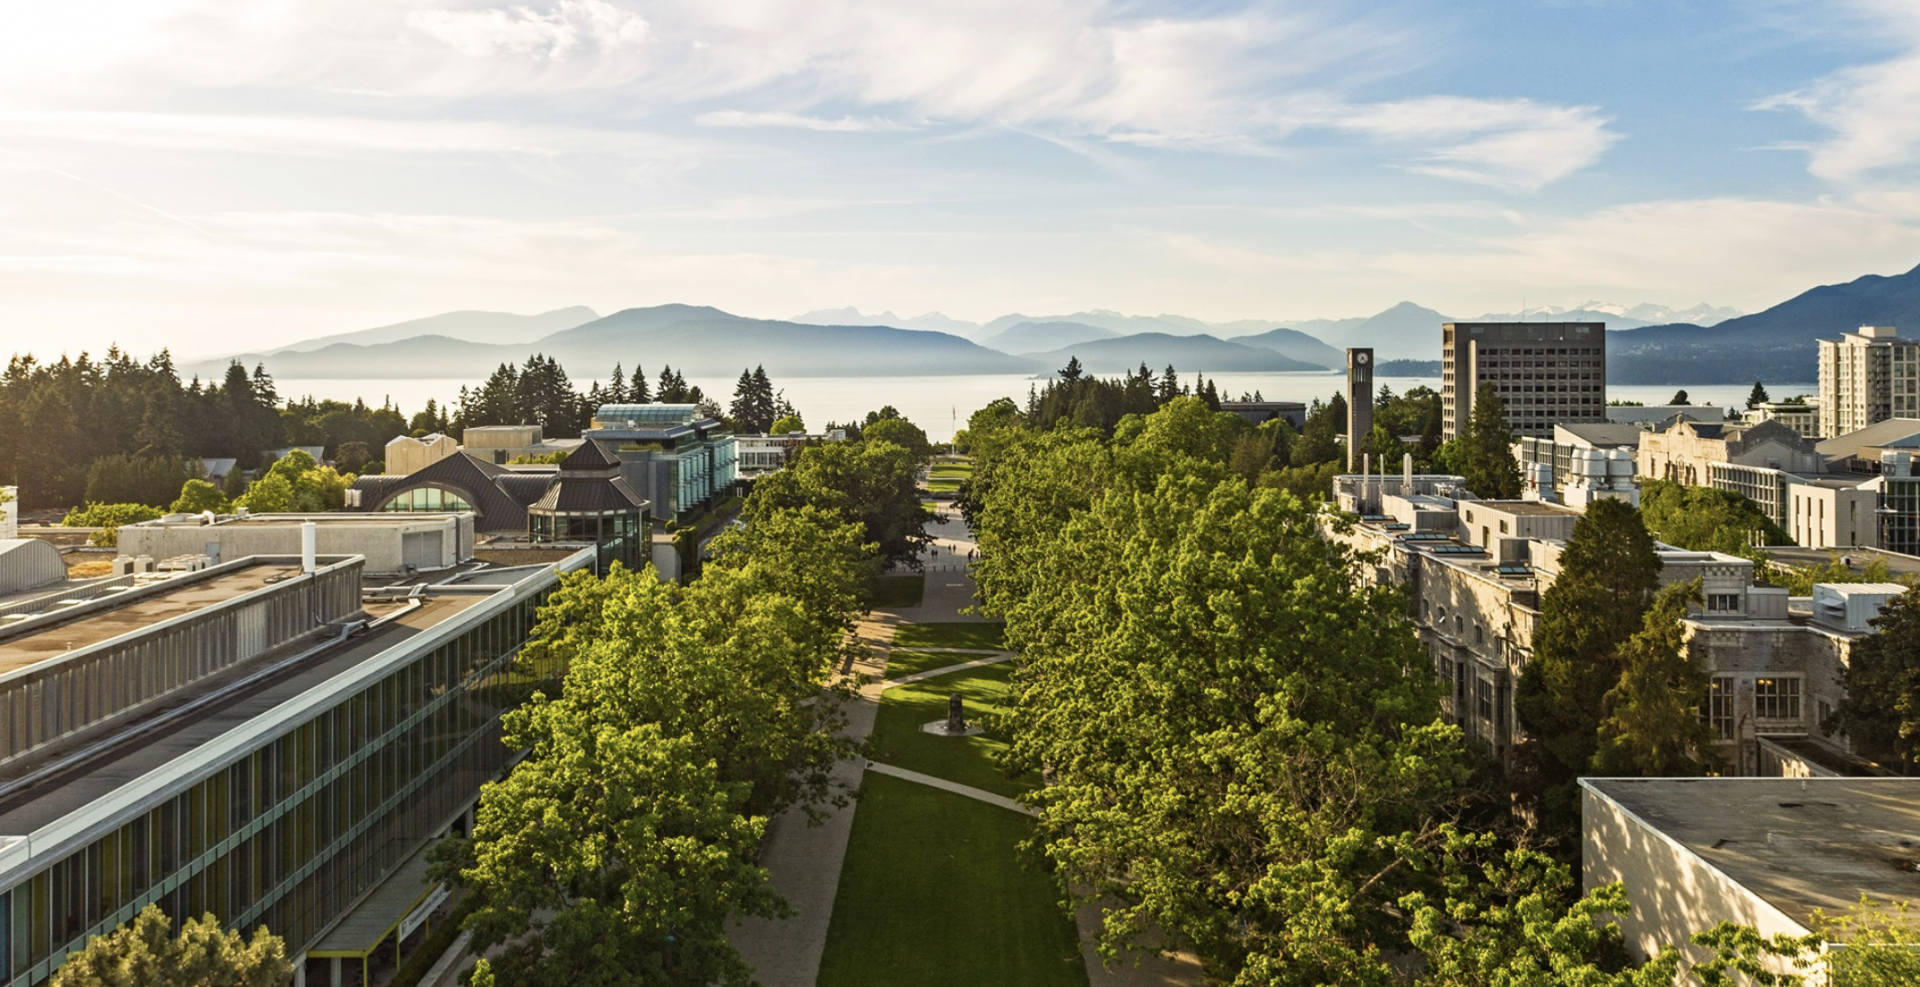 UBC was just ranked as one of the world's top 50 universities